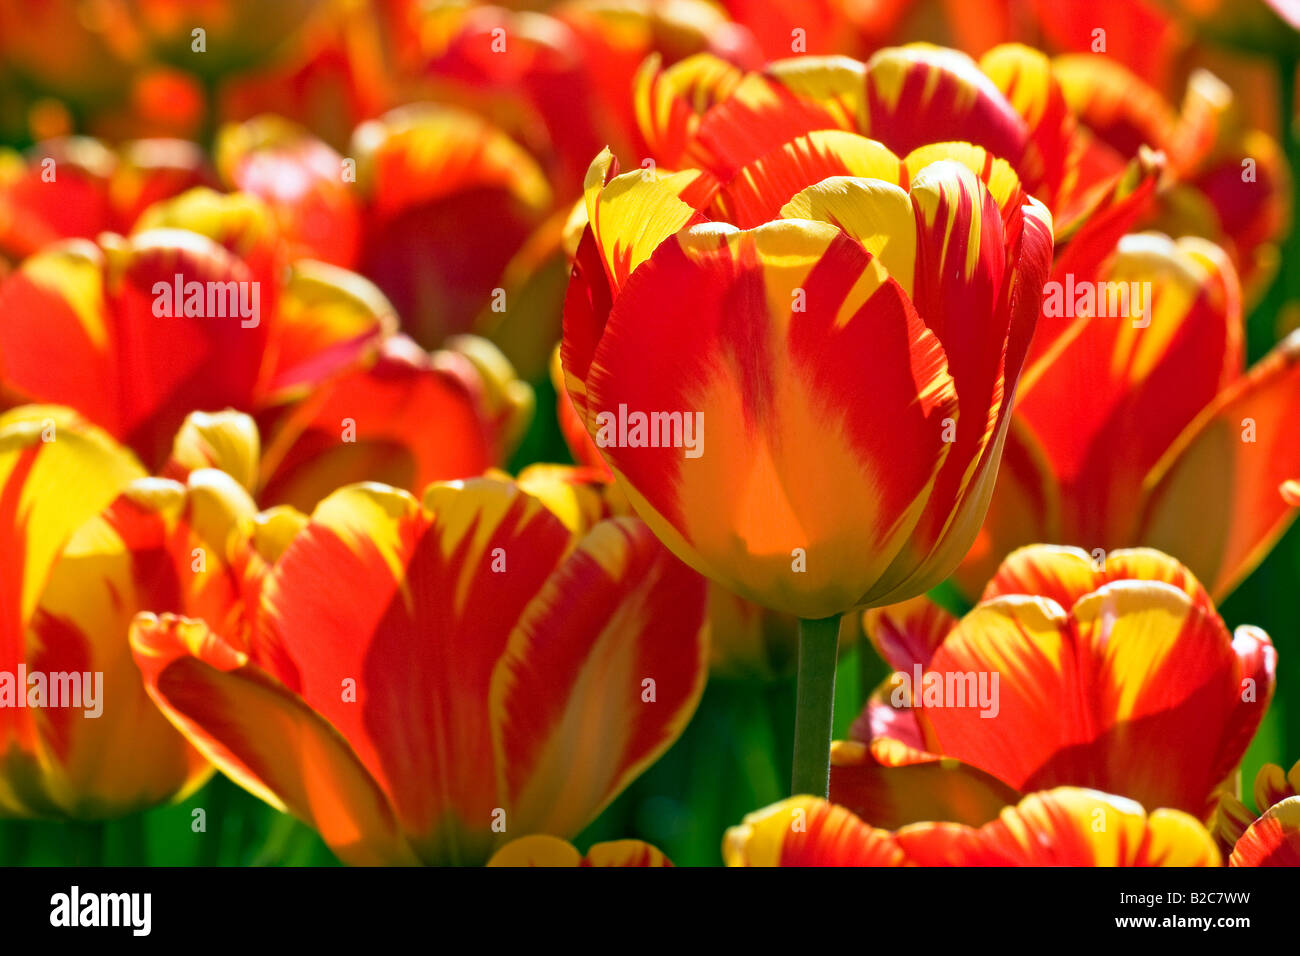 Red-yellow Darwin-Hybrid-Tulips (Tulipa cultivar), species Banja Laka - Stock Image